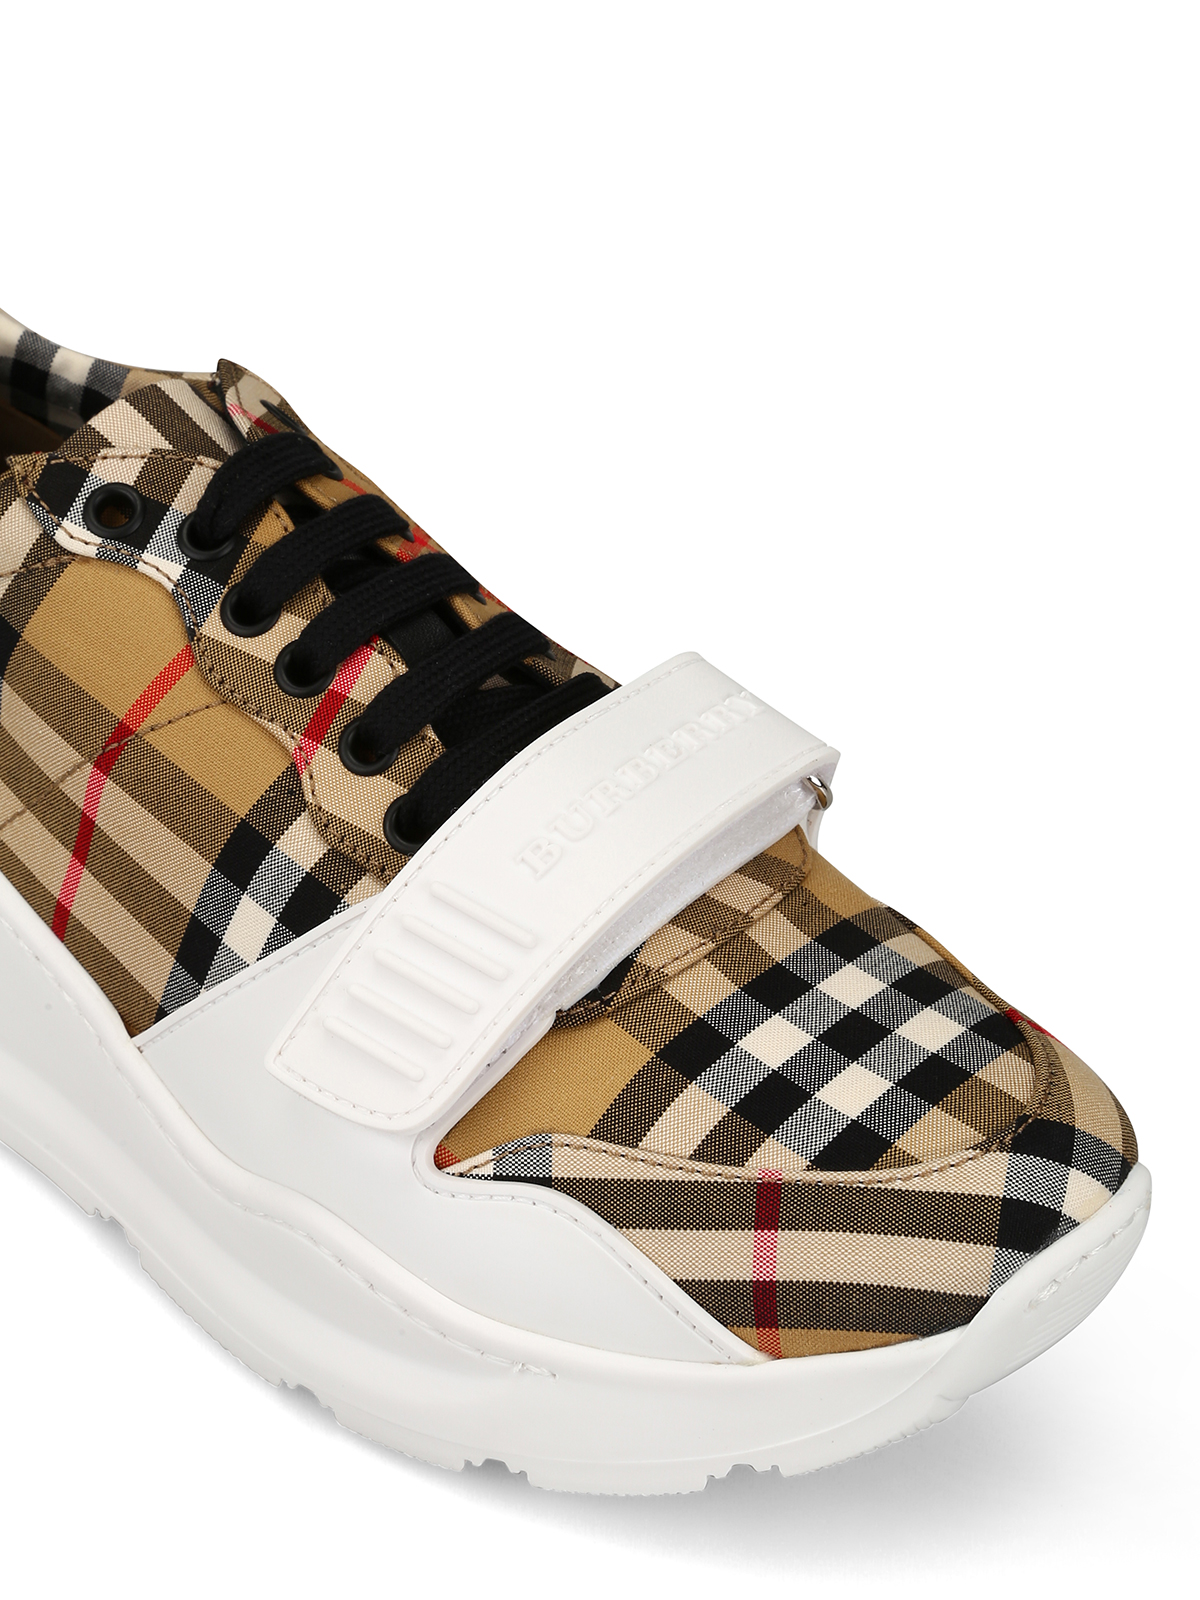 Regis canvas and rubber sneakers